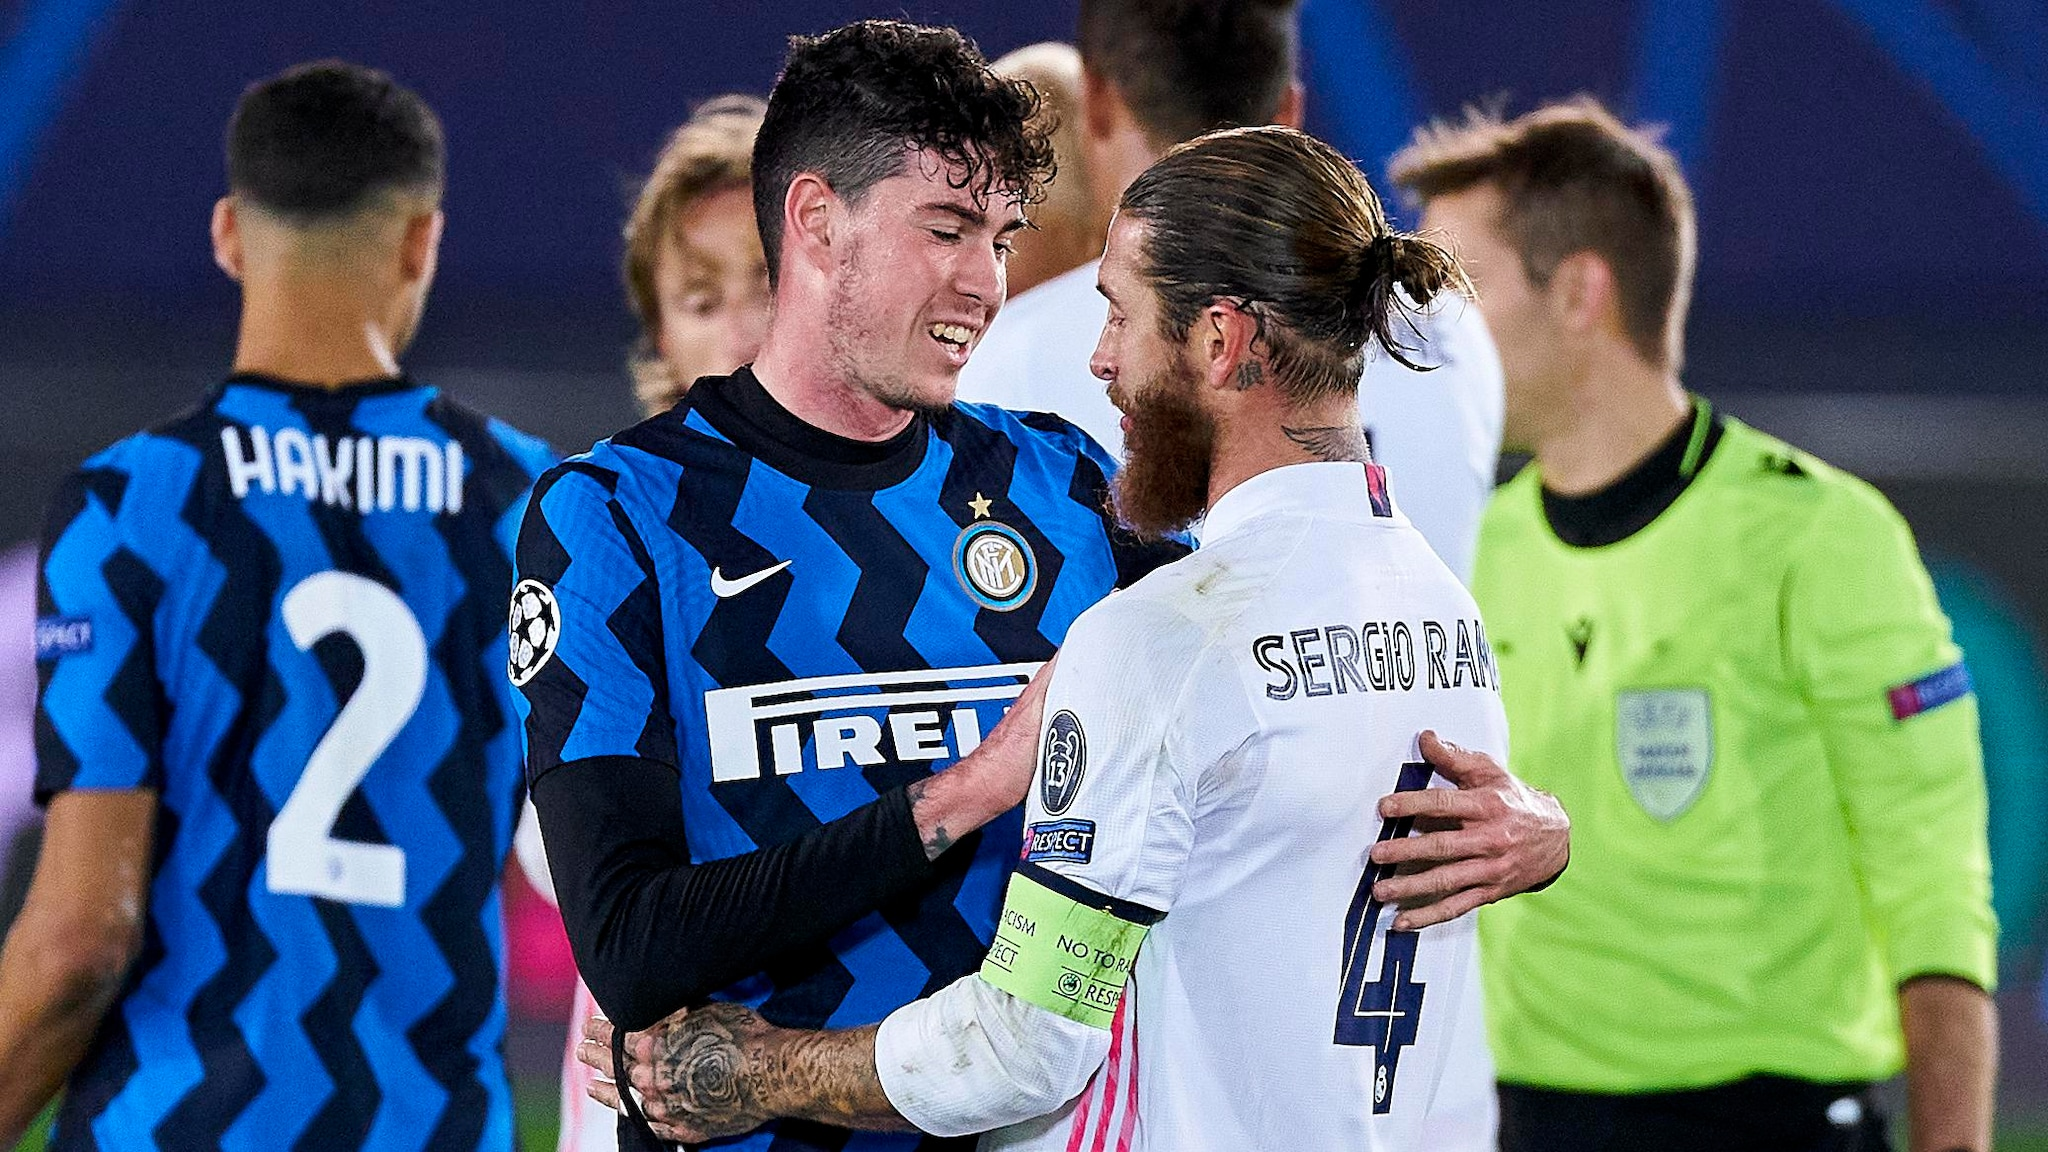 internazionale real madrid internazionale vs real madrid uefa champions league background form guide previous meetings uefa champions league uefa com uefa champions league